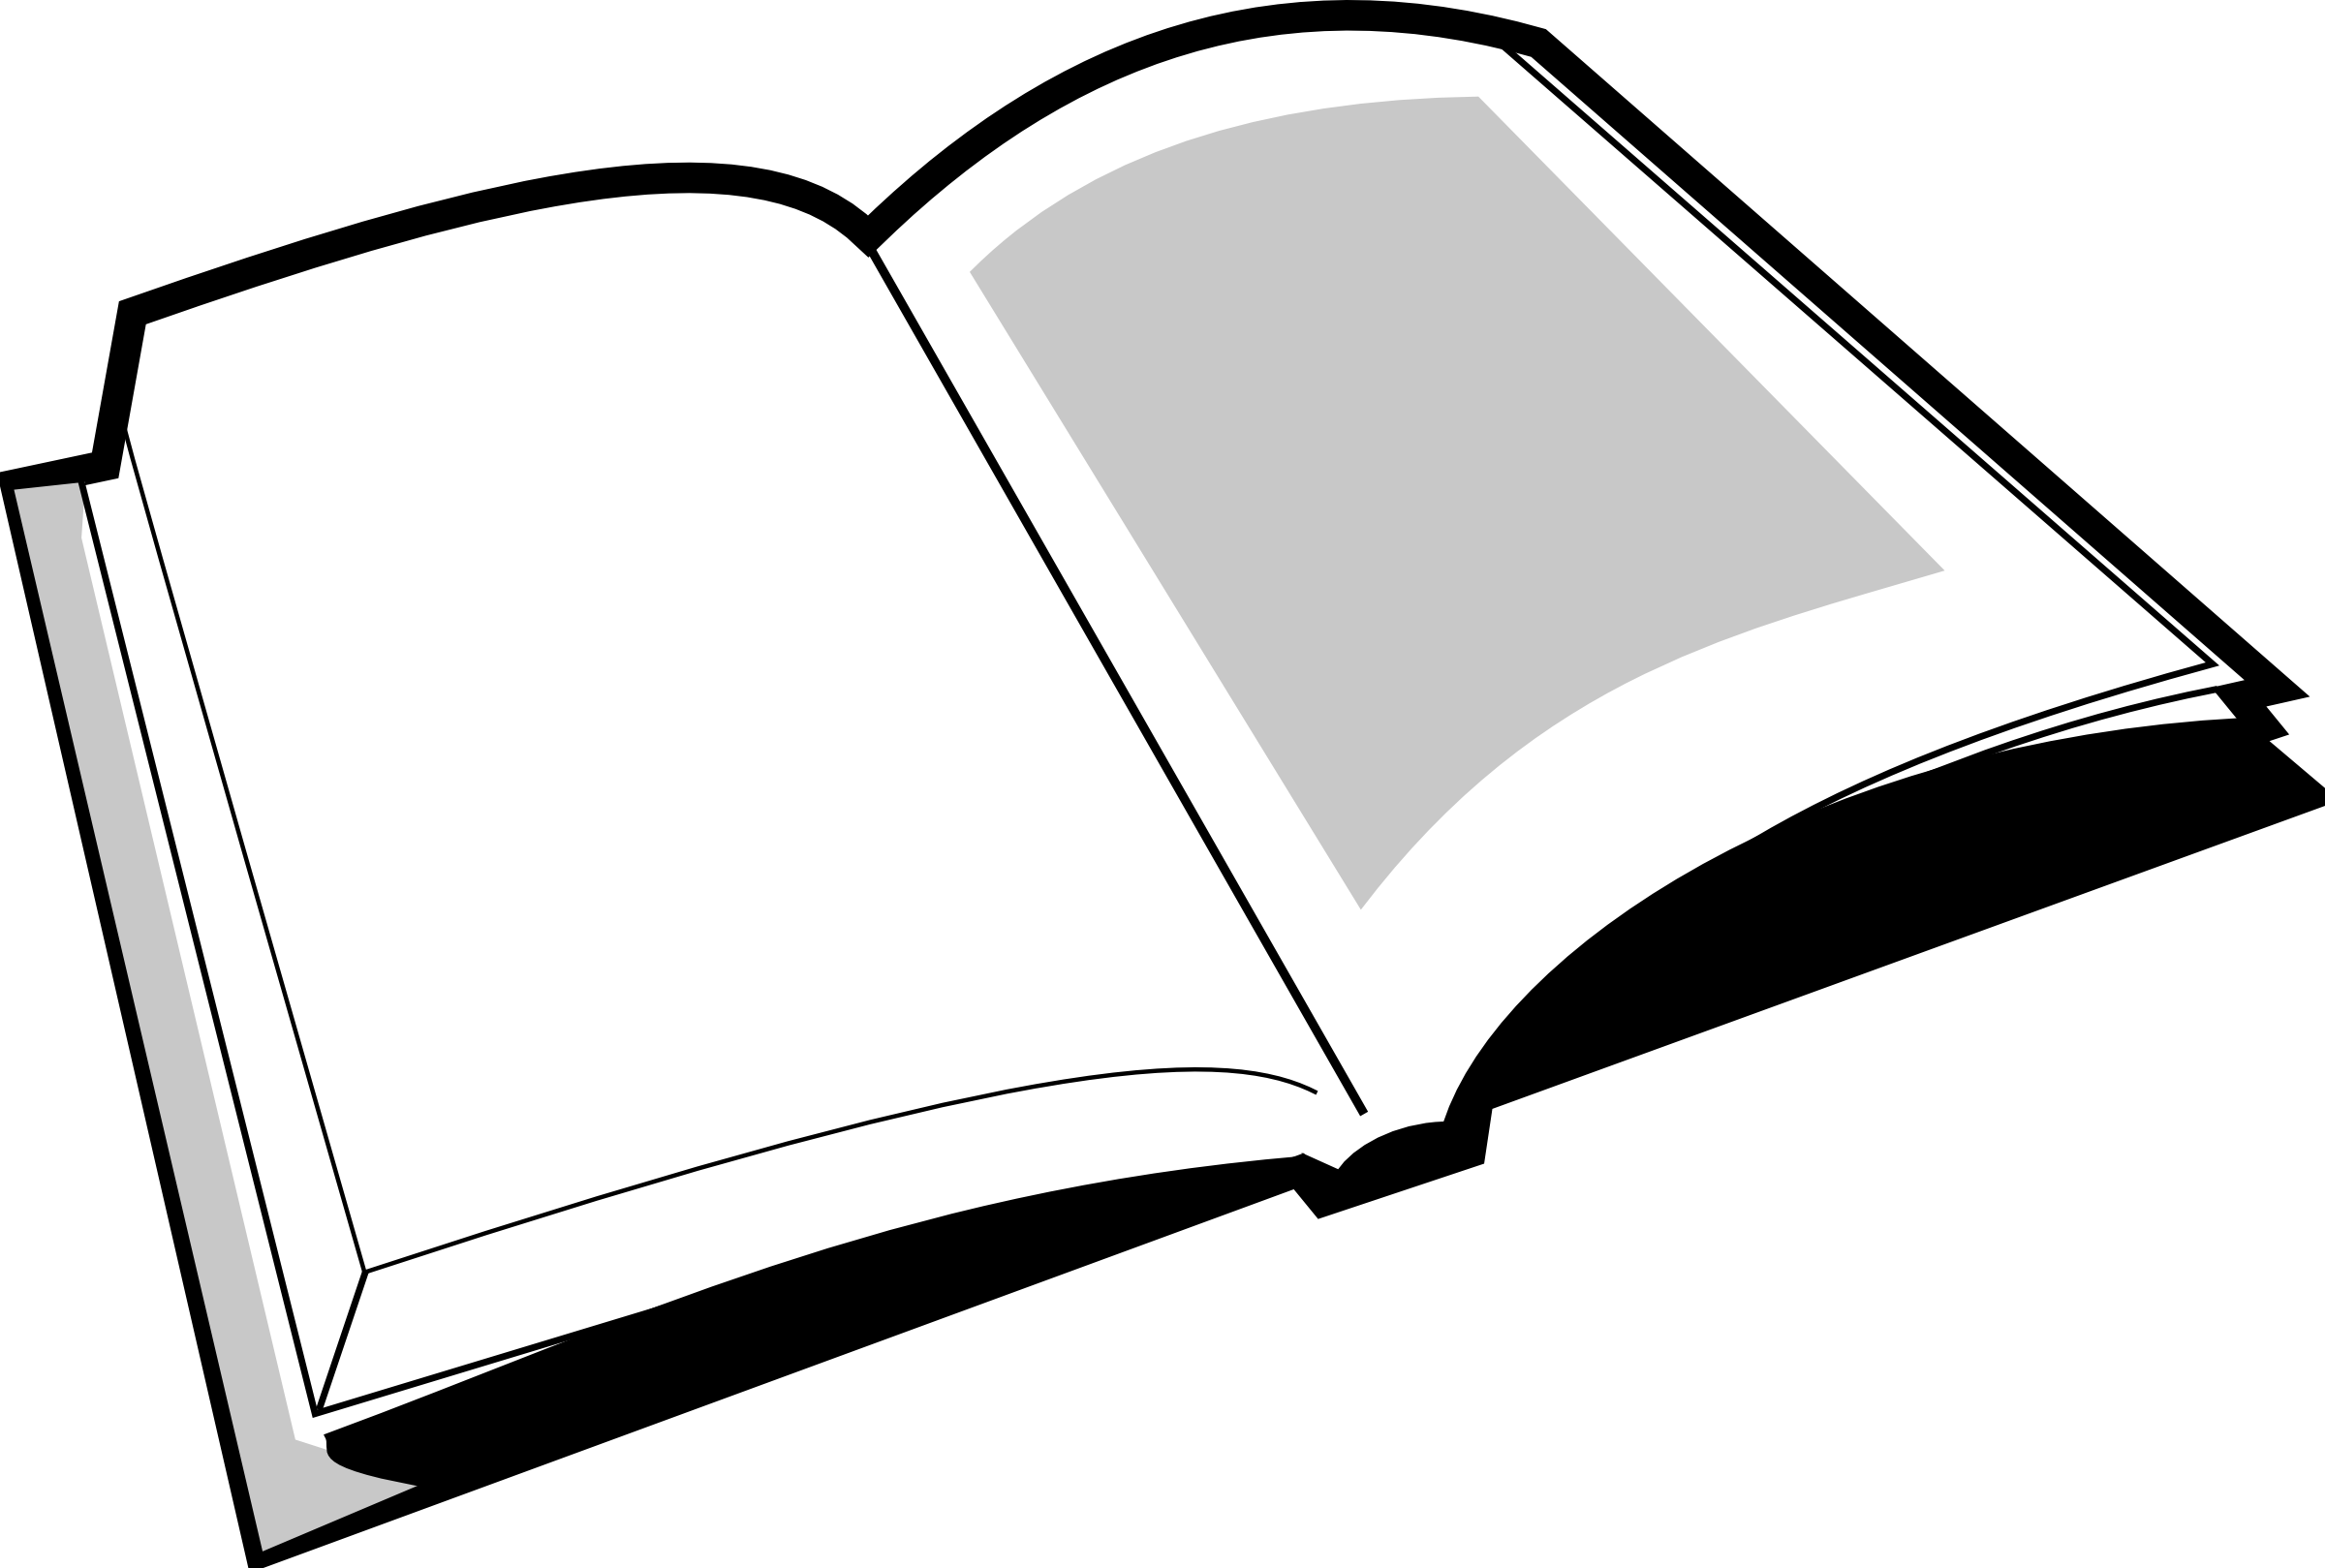 Transparent book clipart - Books Open Book Clip Art Color Free Clipart Images - Cartoon Book Black And White